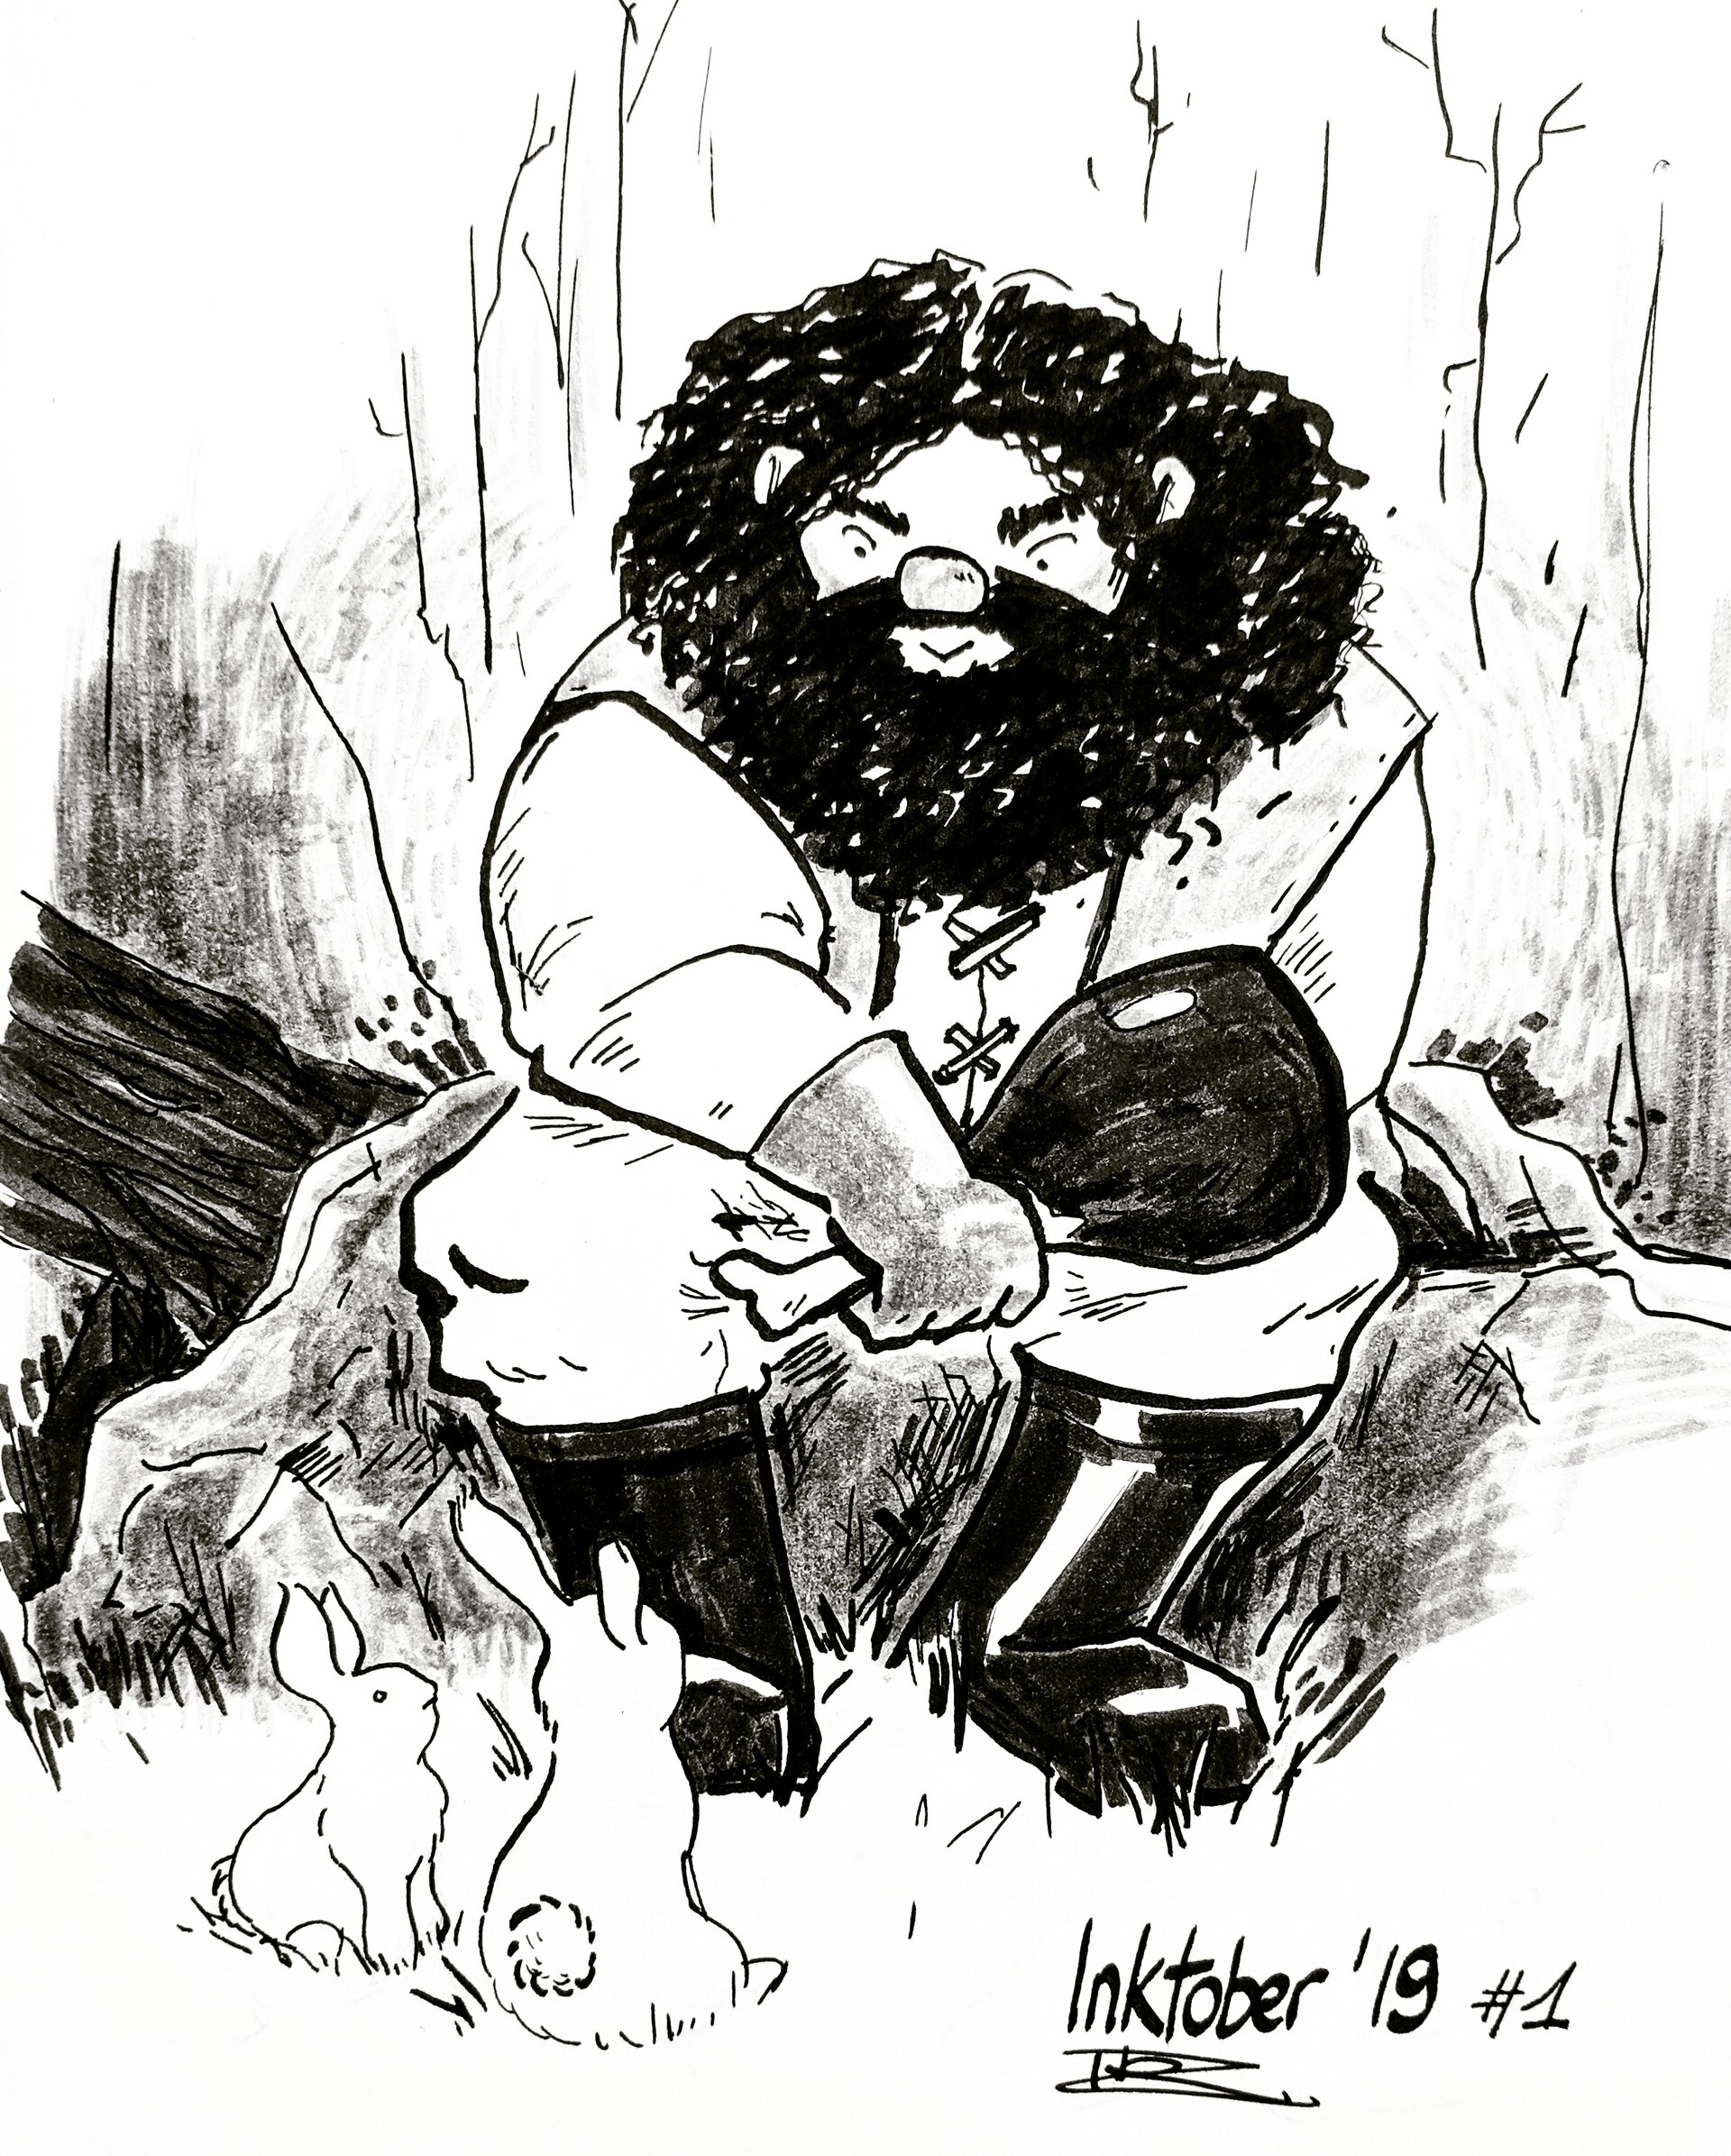 Little illustration of Hagrid having lunch in company of bunnies for Inktober 2019.